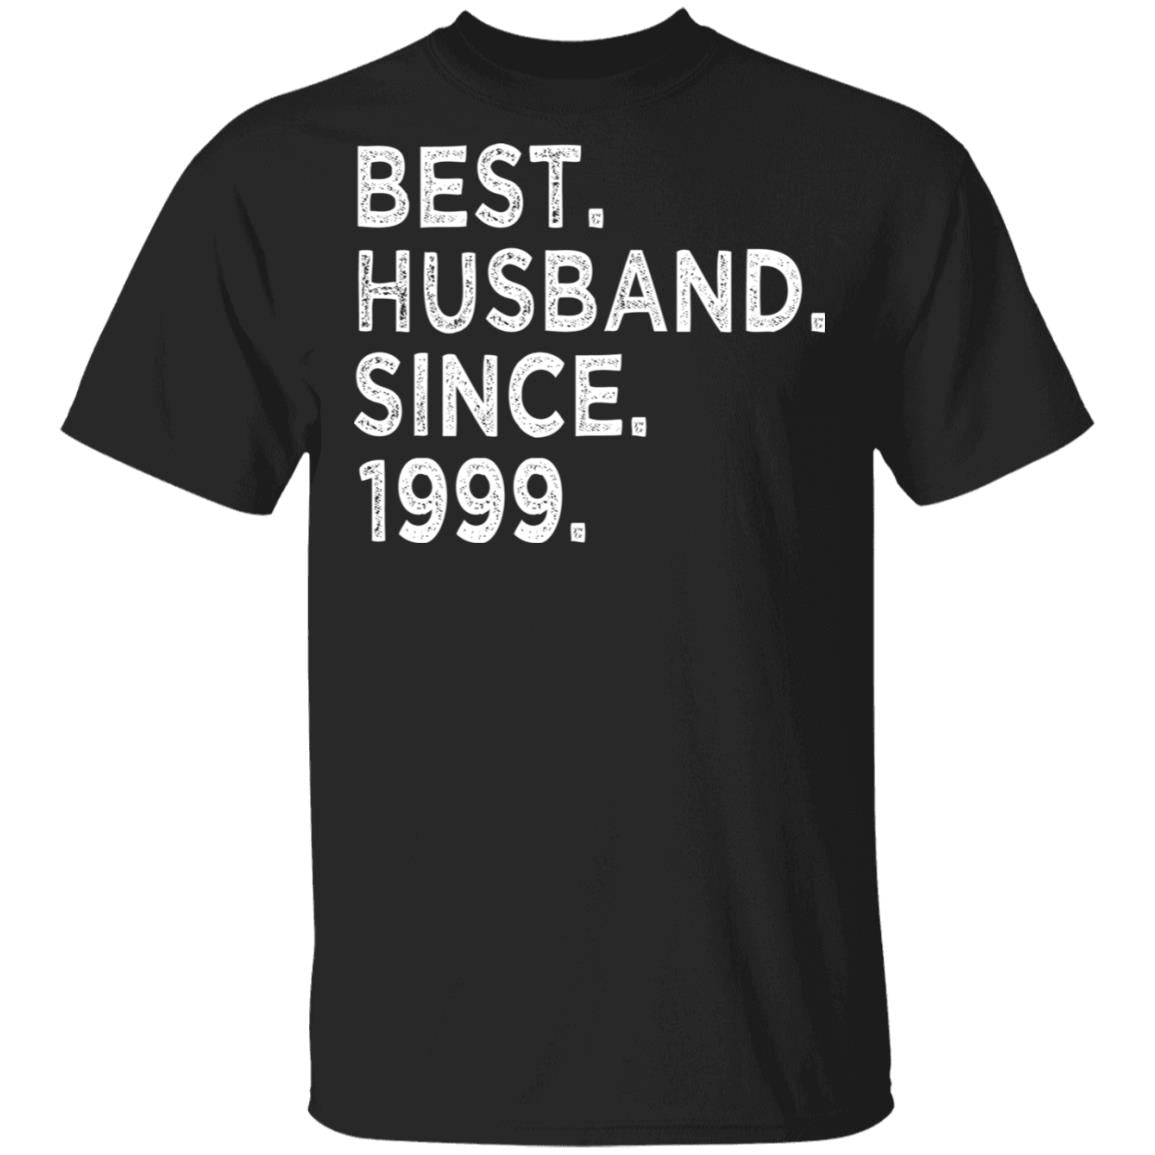 Best-husband-since-1999-wedding-anniversary-t-shirt 99promocode